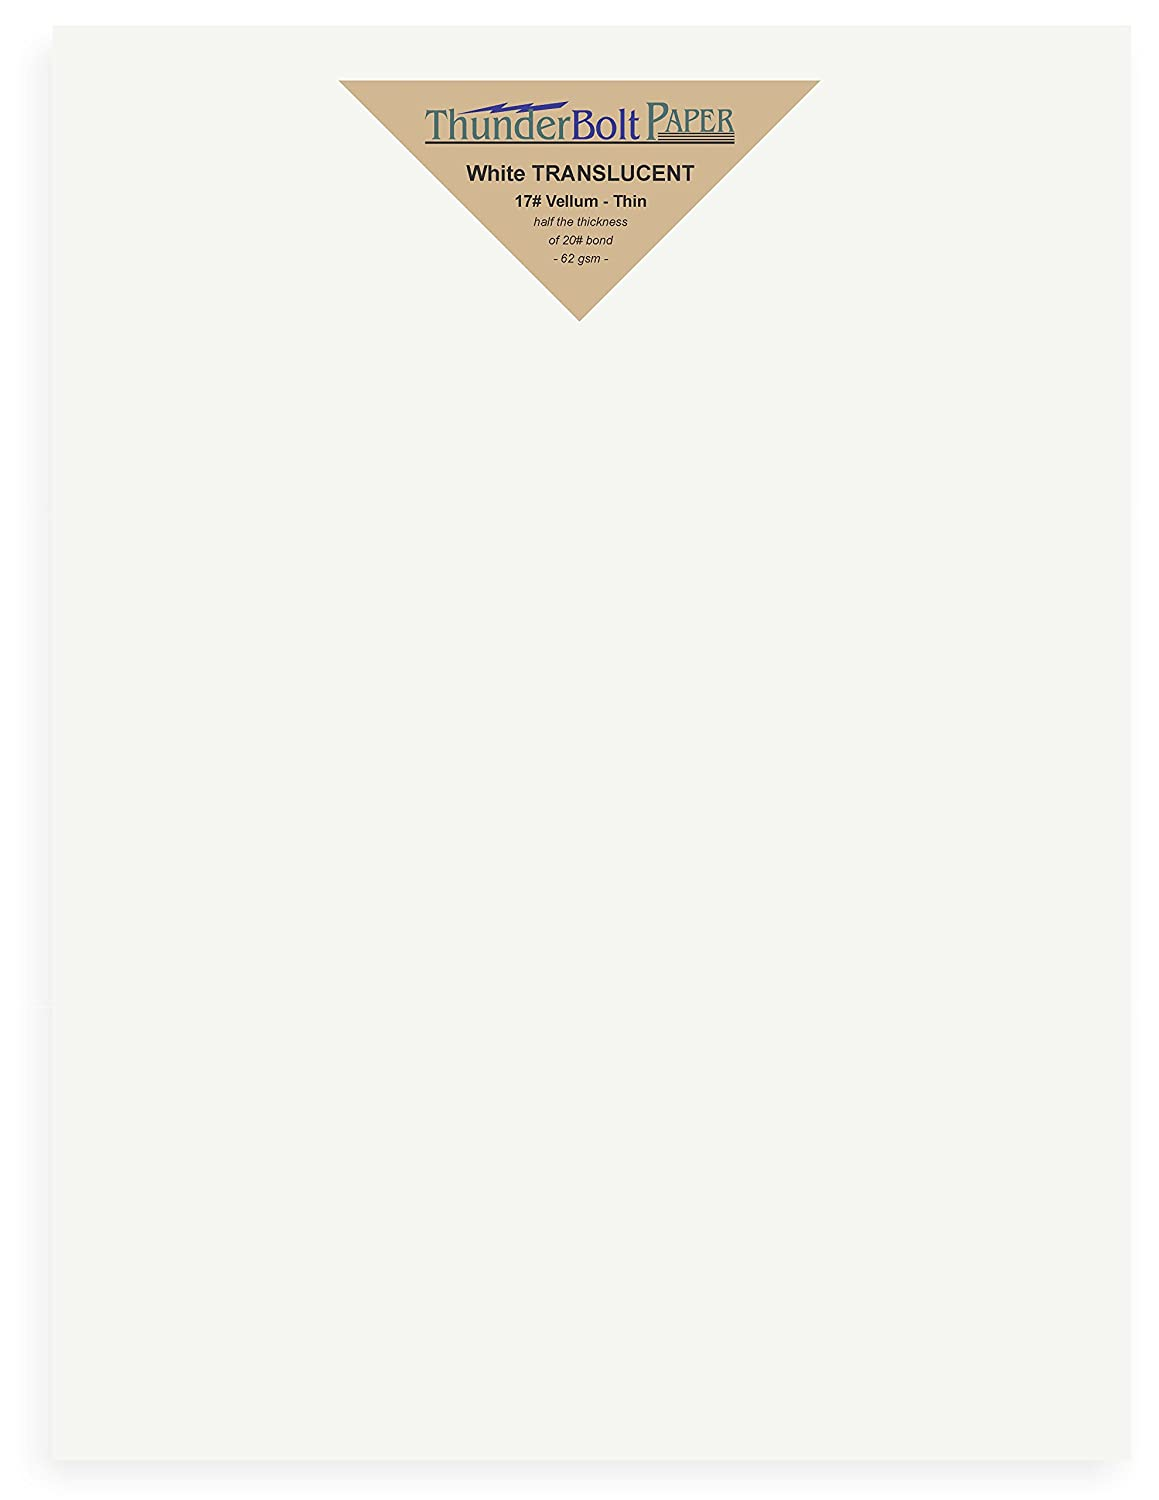 50 Sheets White Translucent 17# (pound) Vellum Paper 8.5 X 11 Inches Letter Size Light Weight by ThunderBolt Paper 4336940497